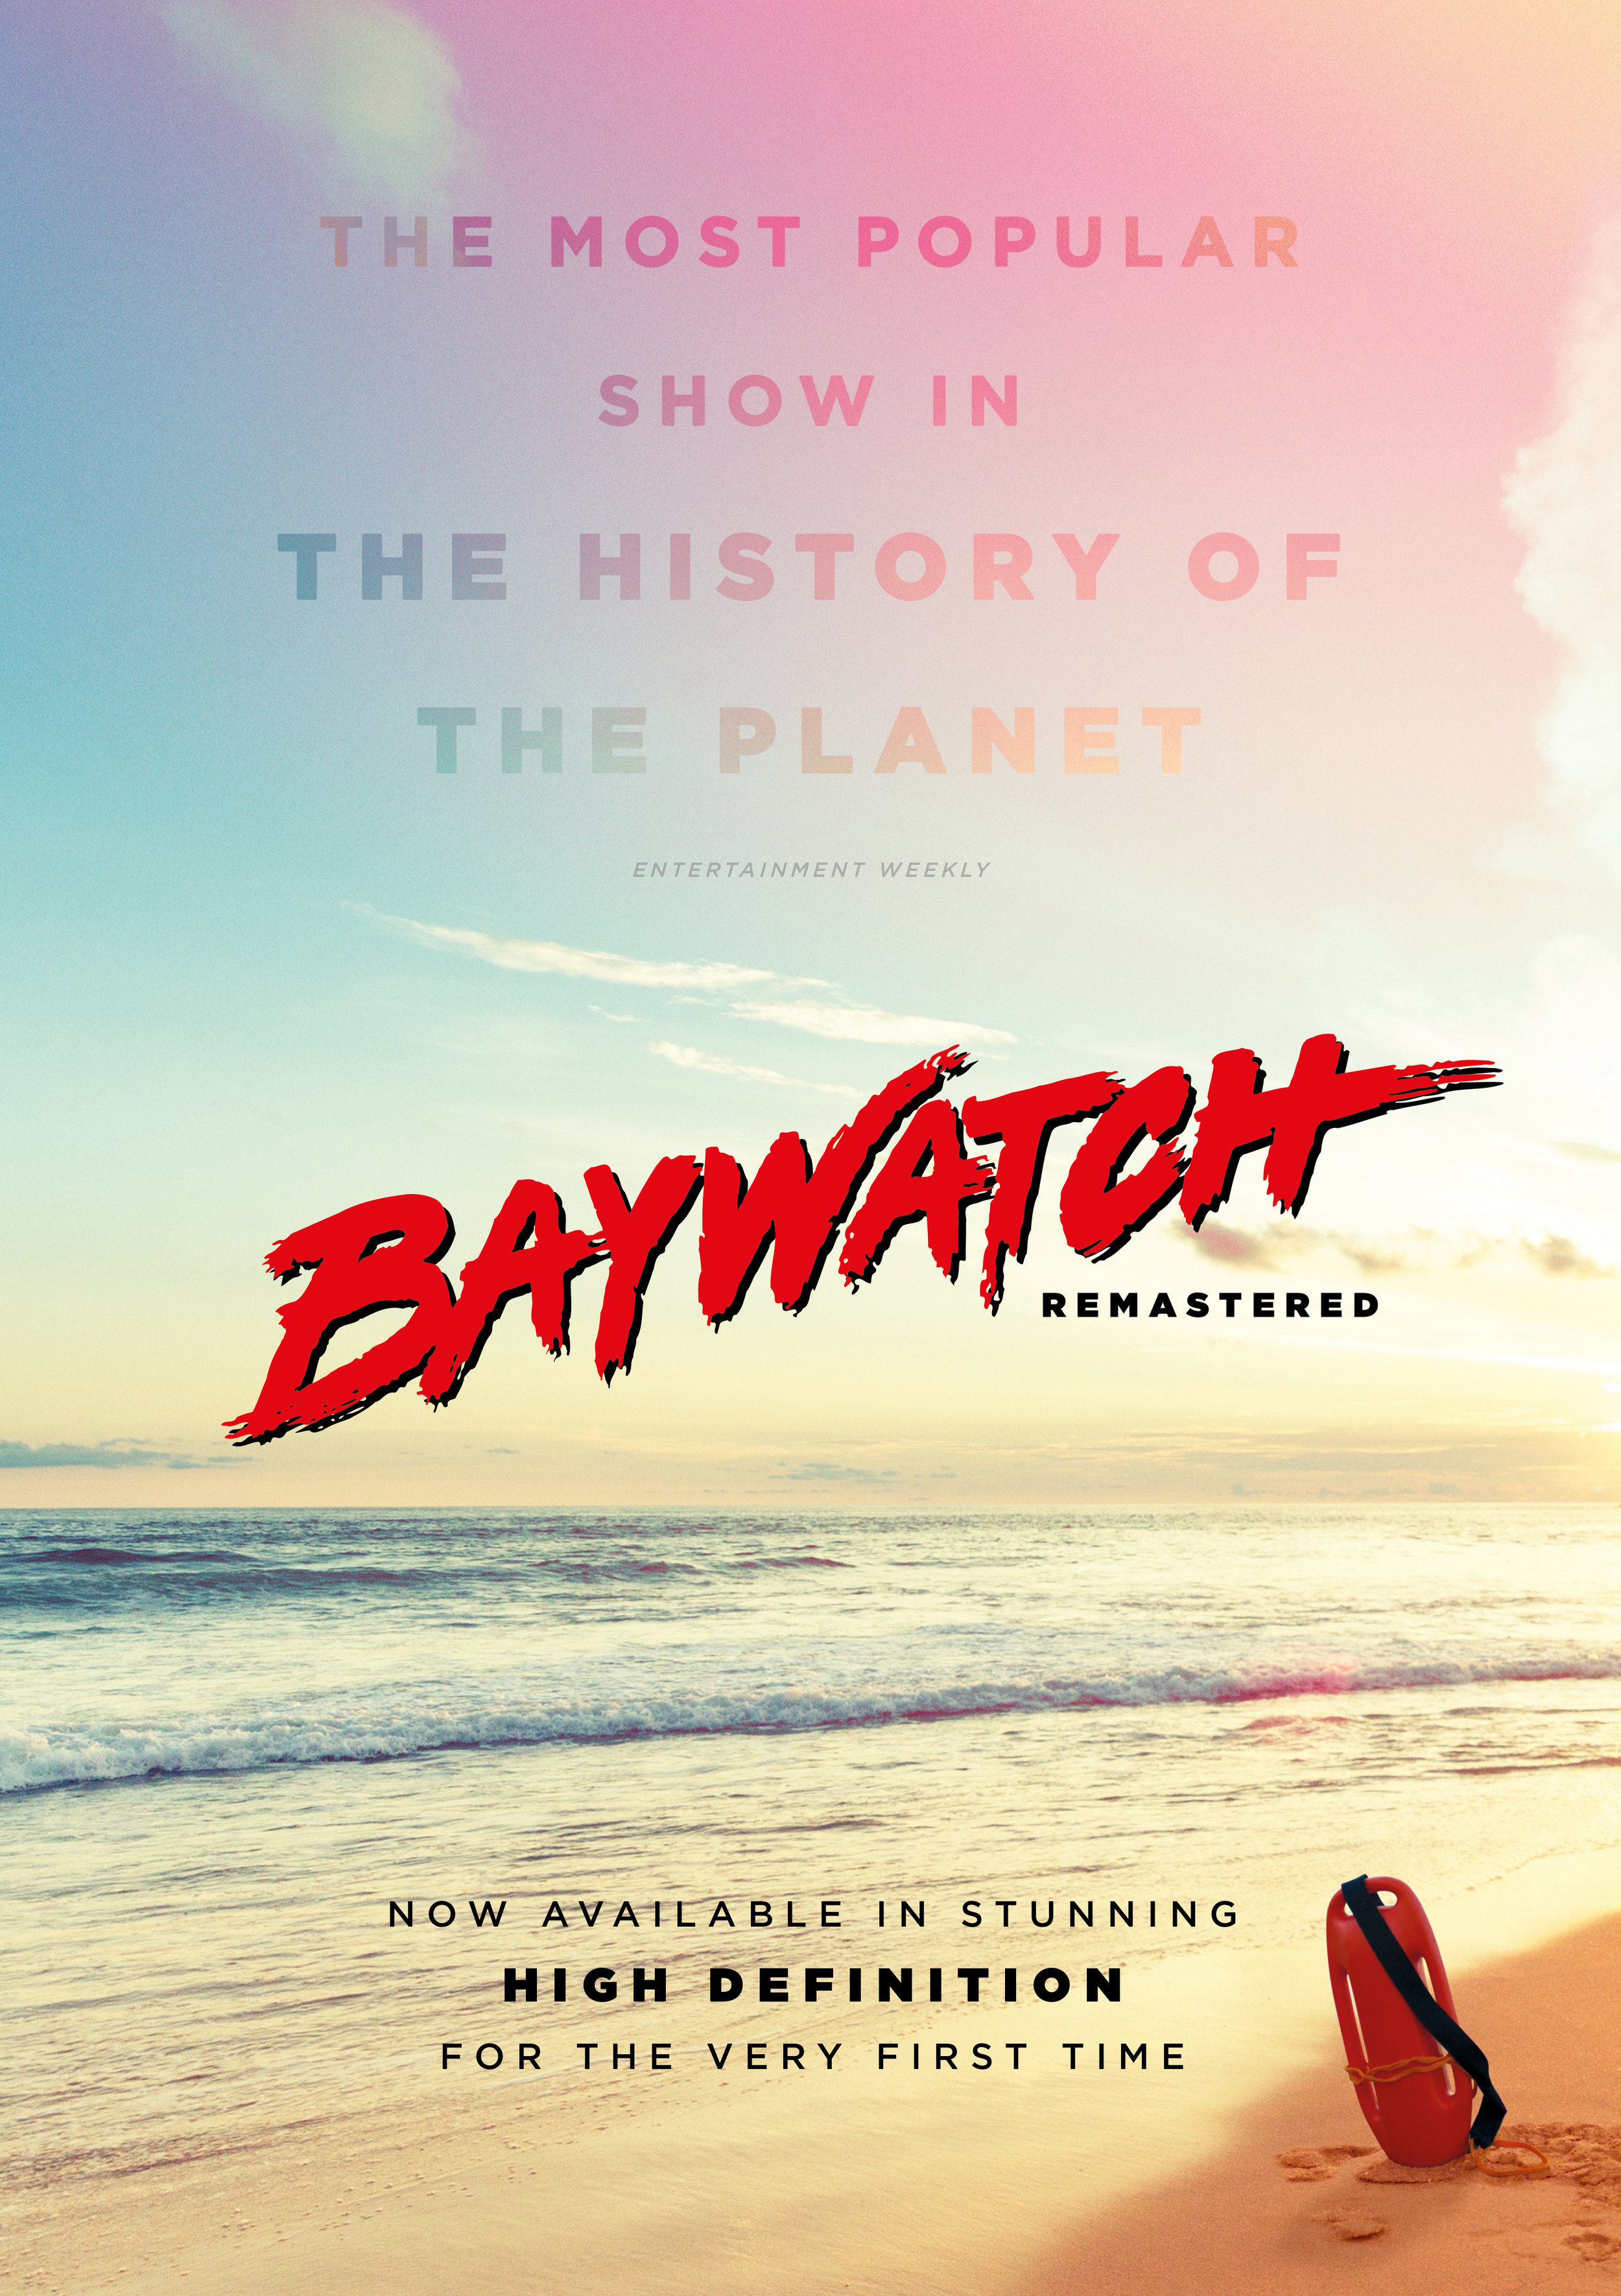 LCD_FREMANTLE_BAYWATCH_A1_POSTER_AW.jpg